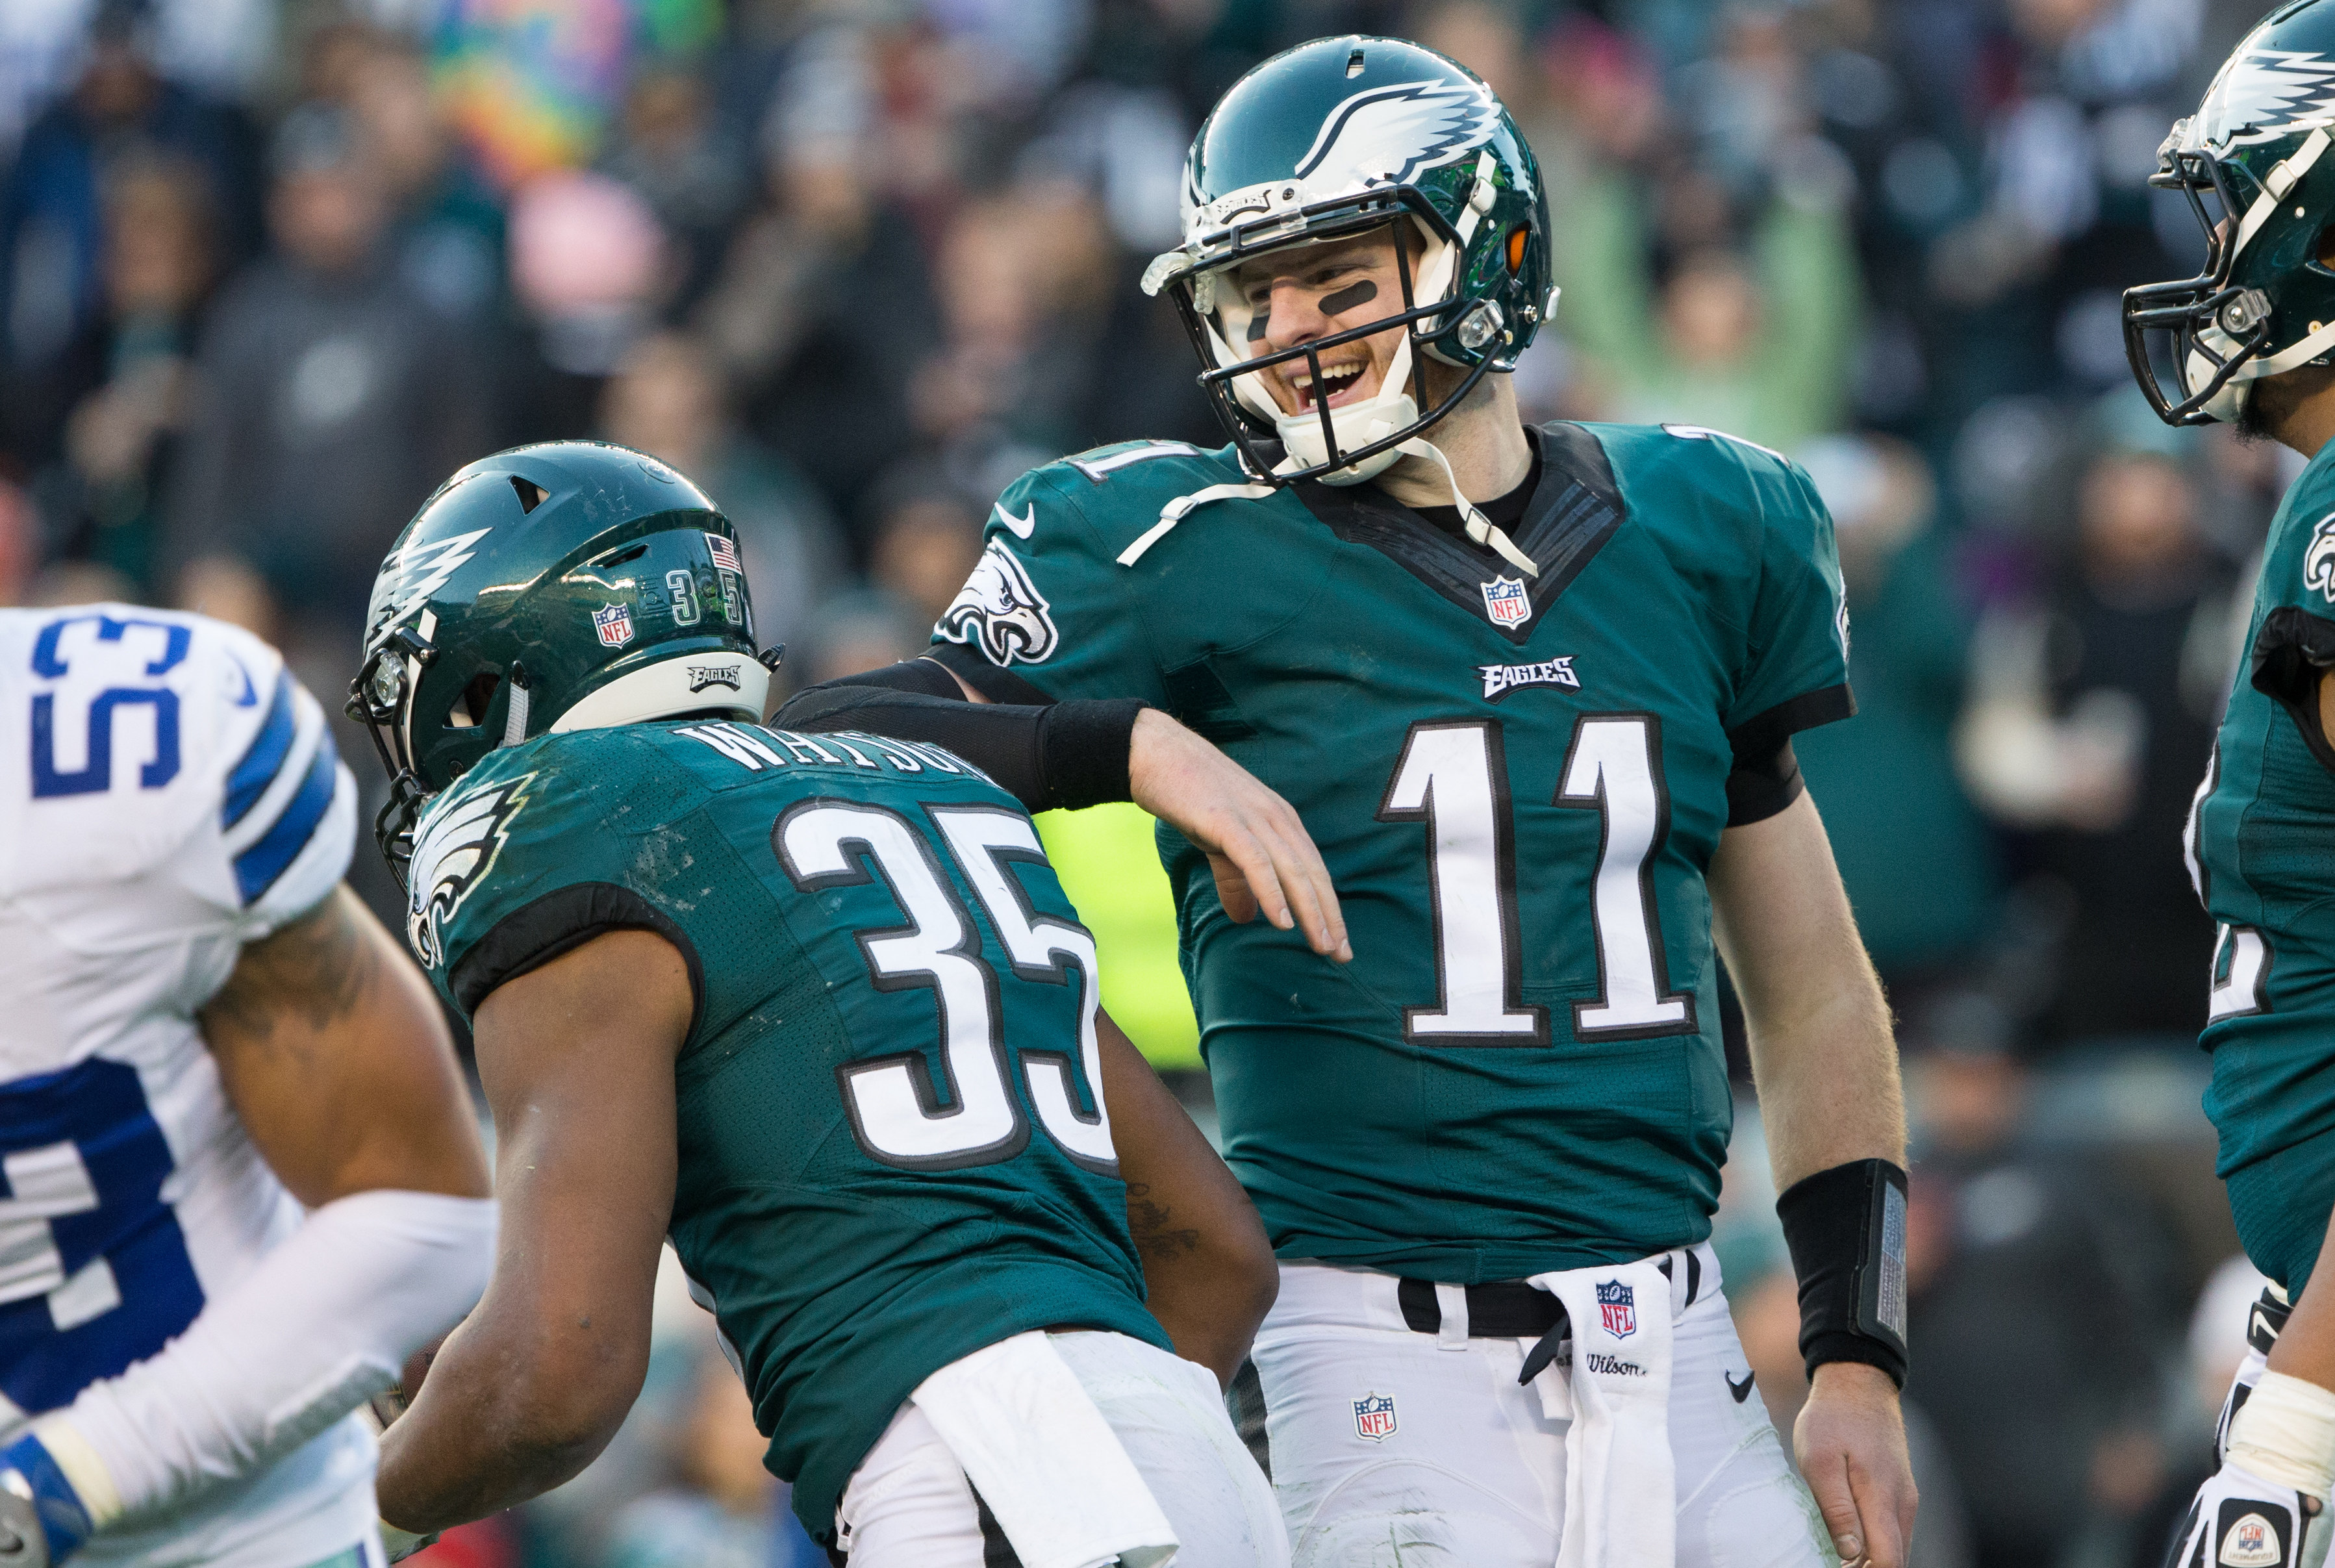 Nfl Schedule 2017 Predictions Espn Projects Eagles To